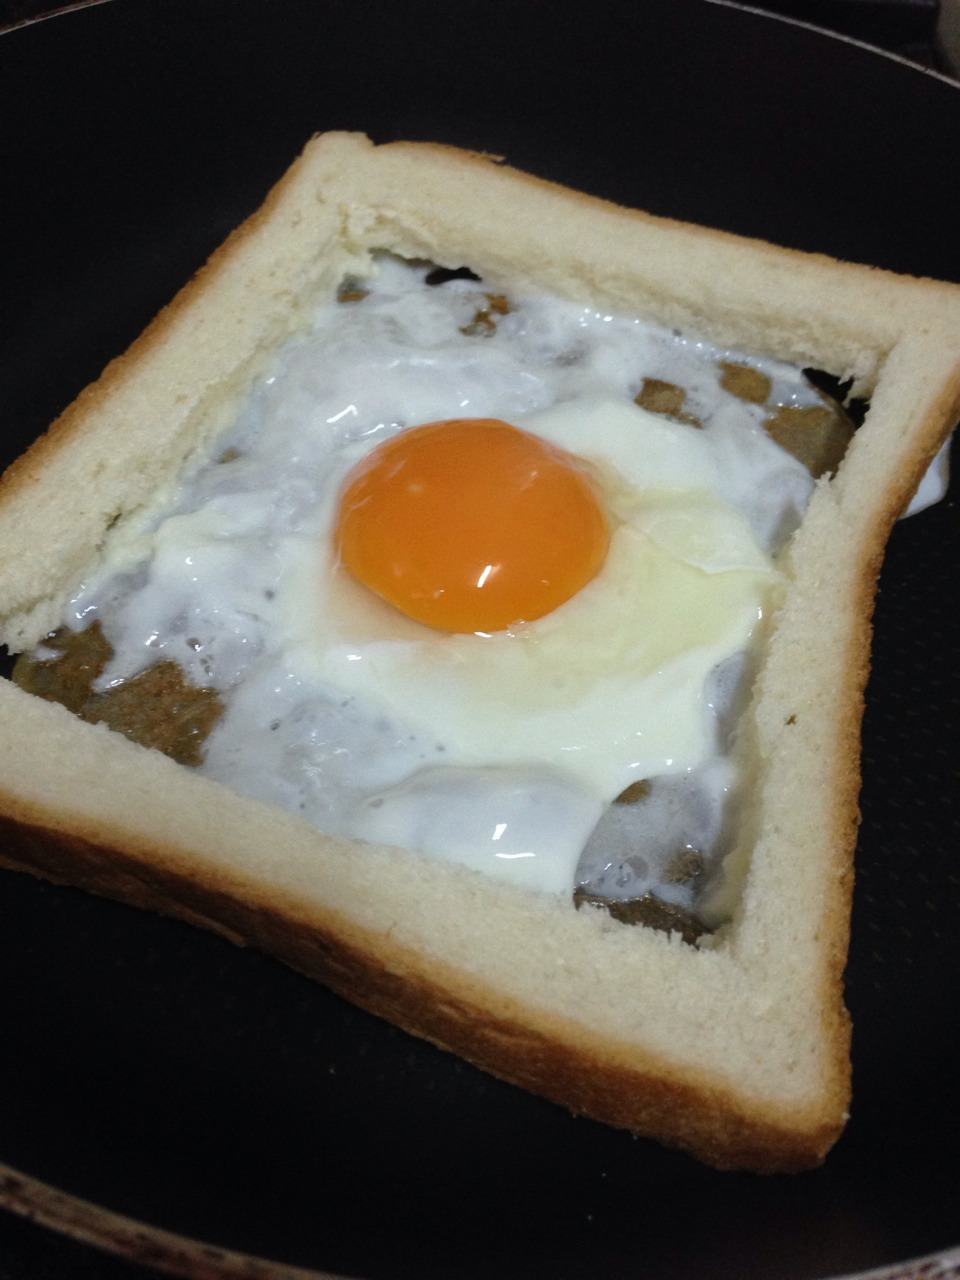 Cut a square In the middle and put it aside, we will use it later. also crack an egg in the empty space.